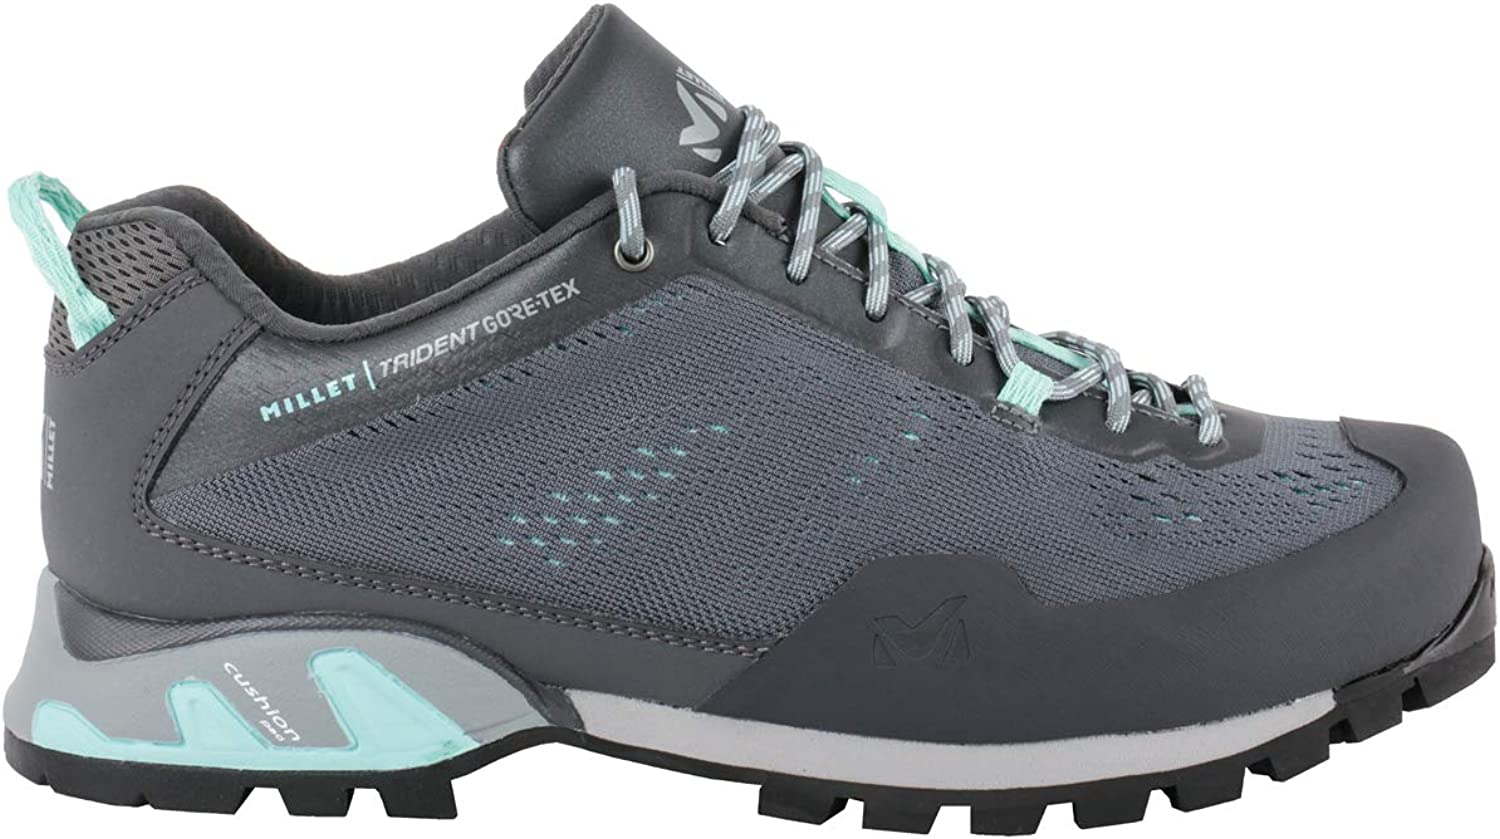 MILLET Women's Low Selling rankings excellence Hiking Rise Shoes